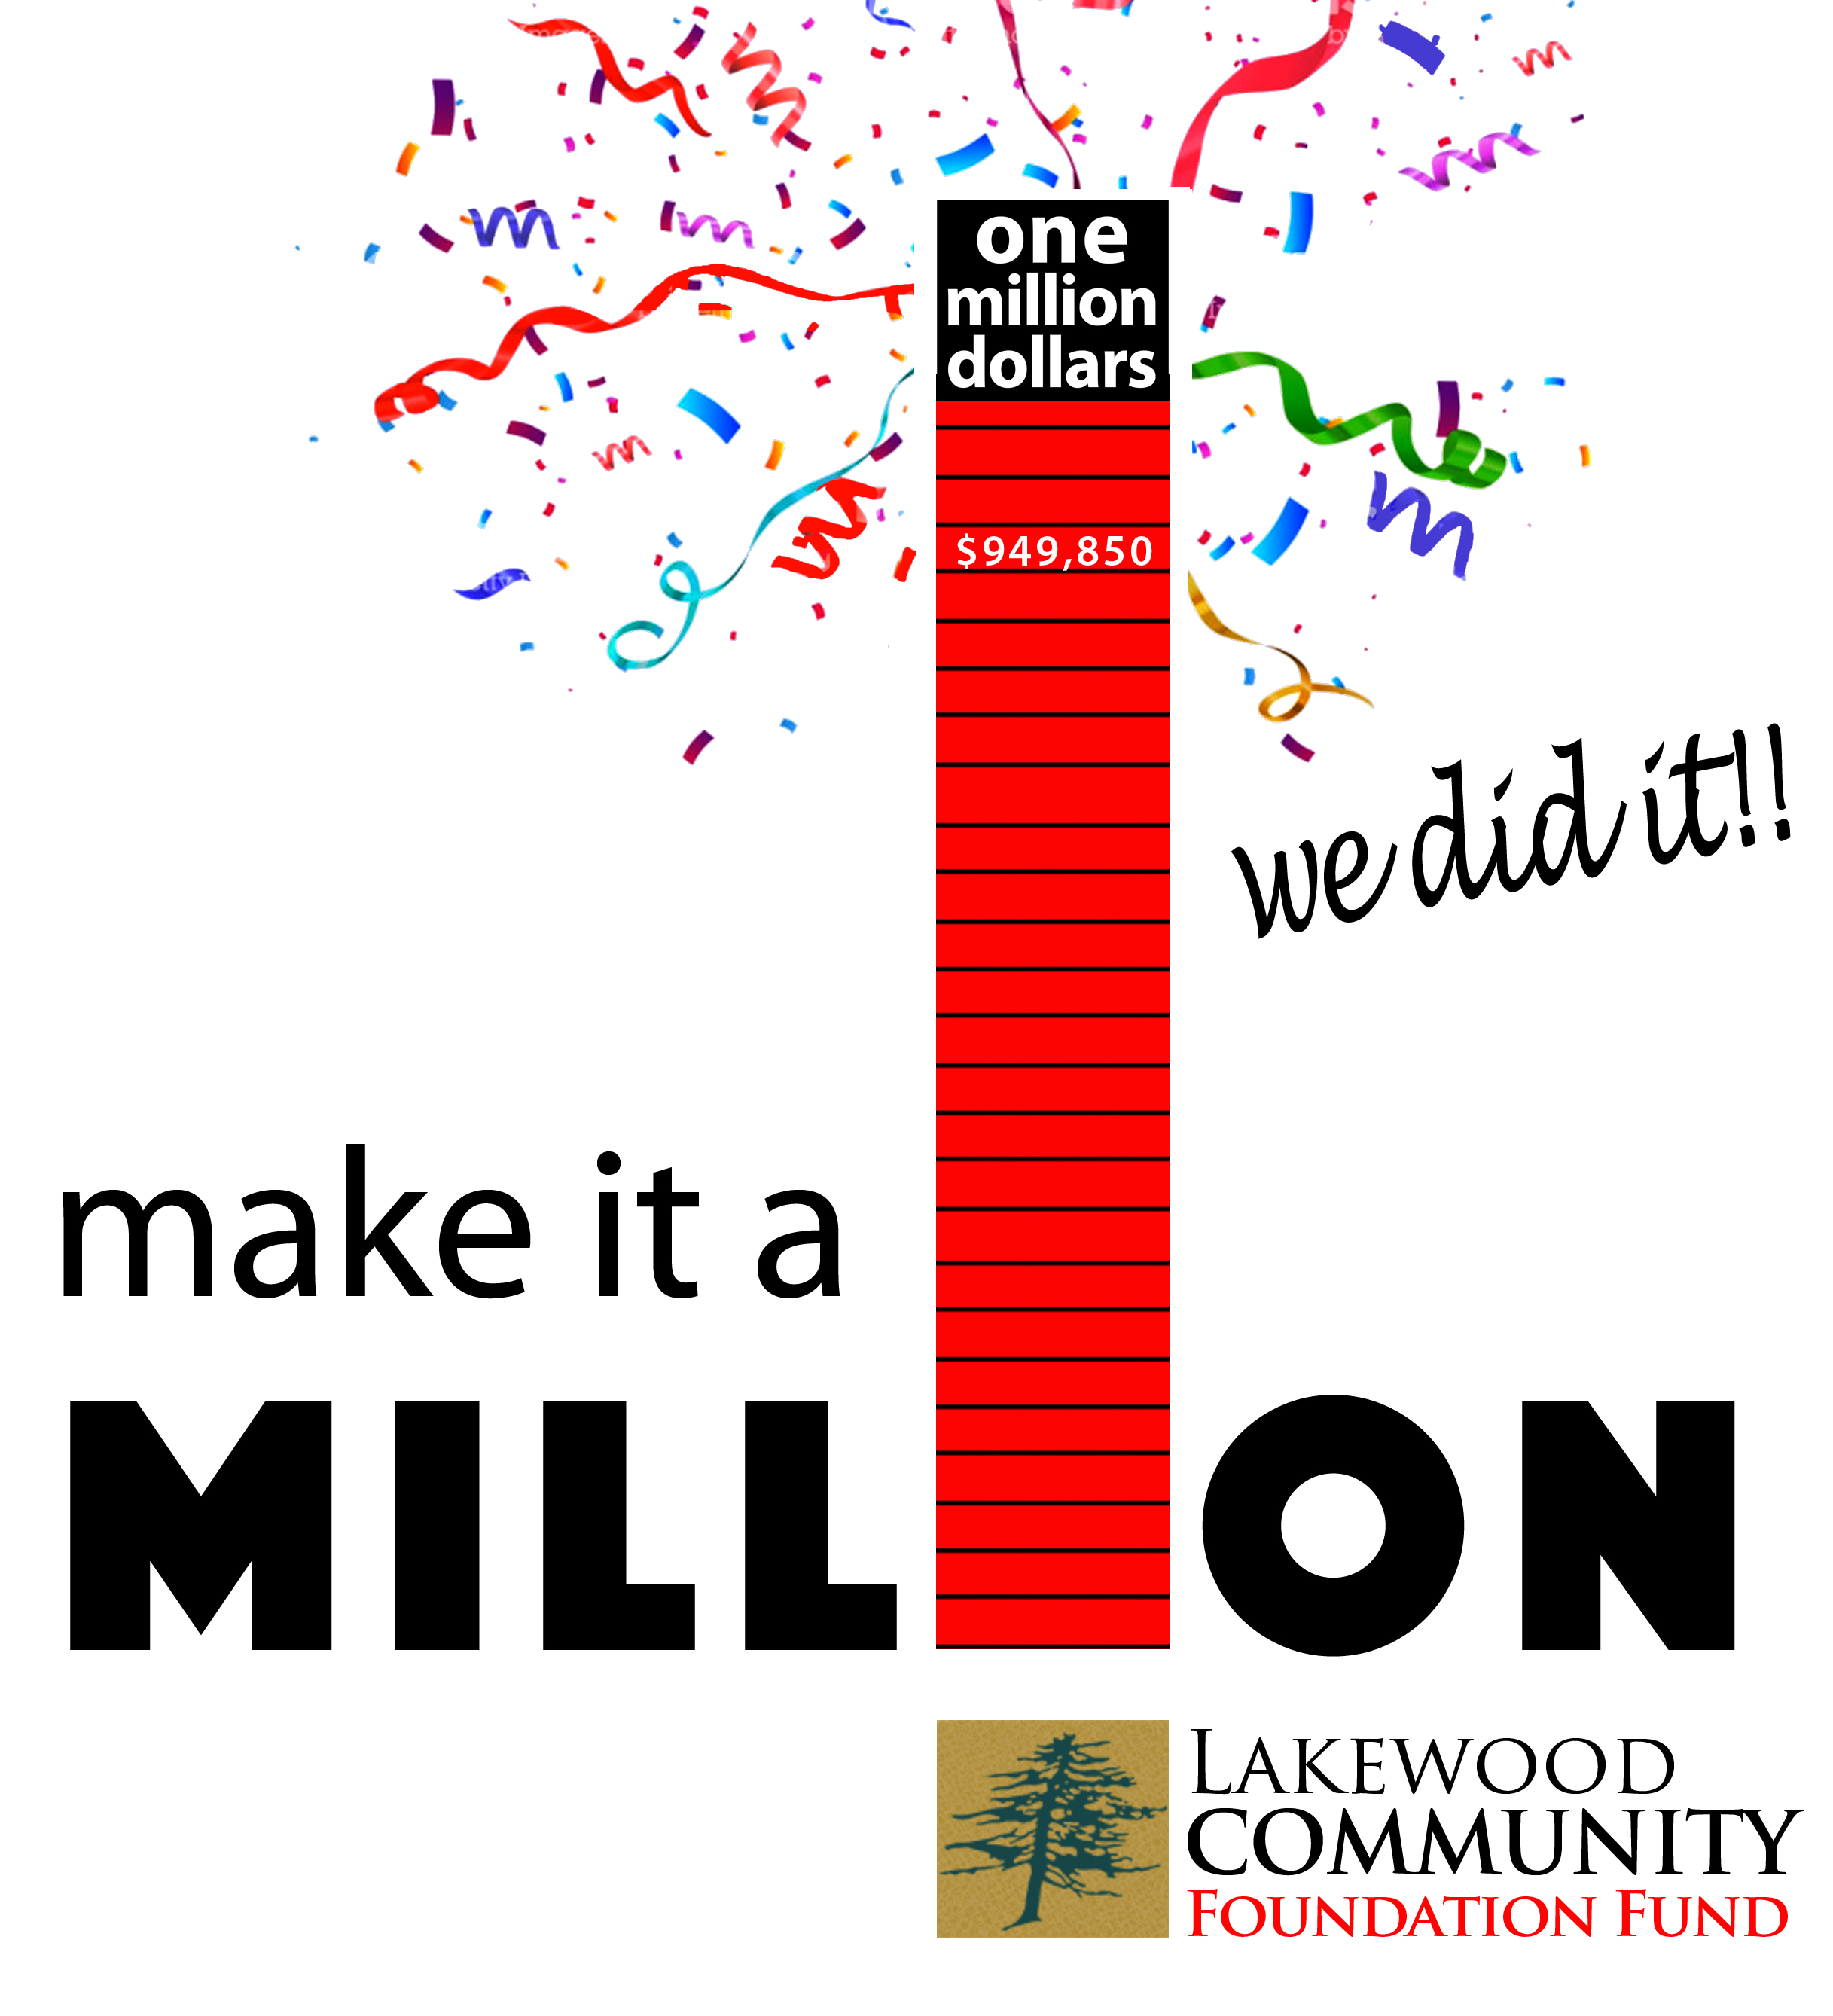 make it a MILLION - We're almost there!